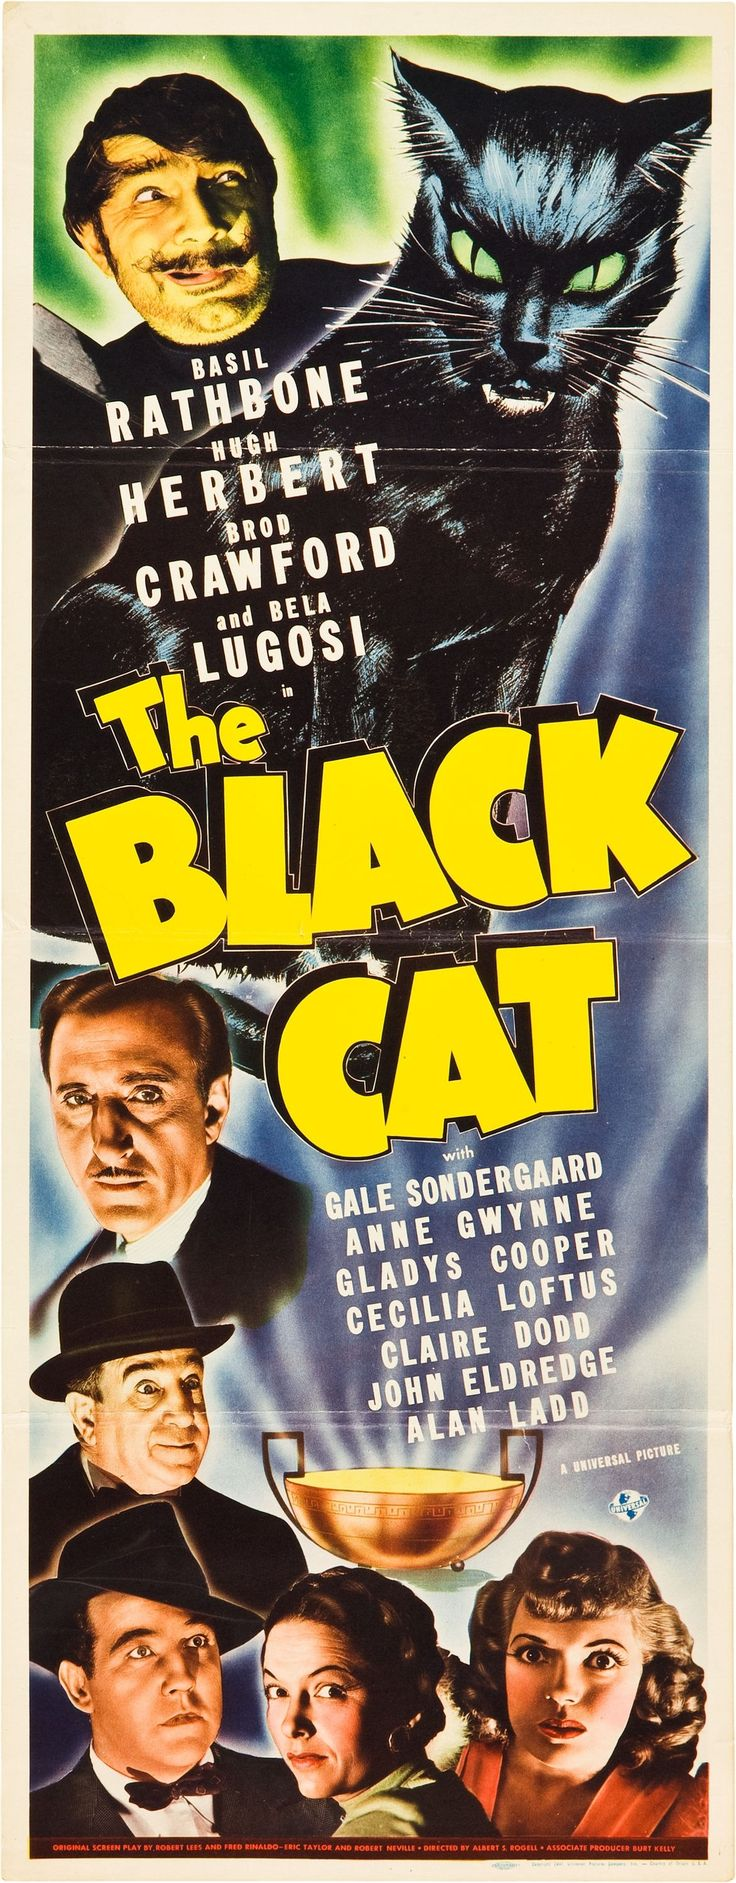 Classic Theatrical Poster - The Black Cat, 1941 cat, classic, comedy, film, high resolution, horror, movie, theatrical, vintage